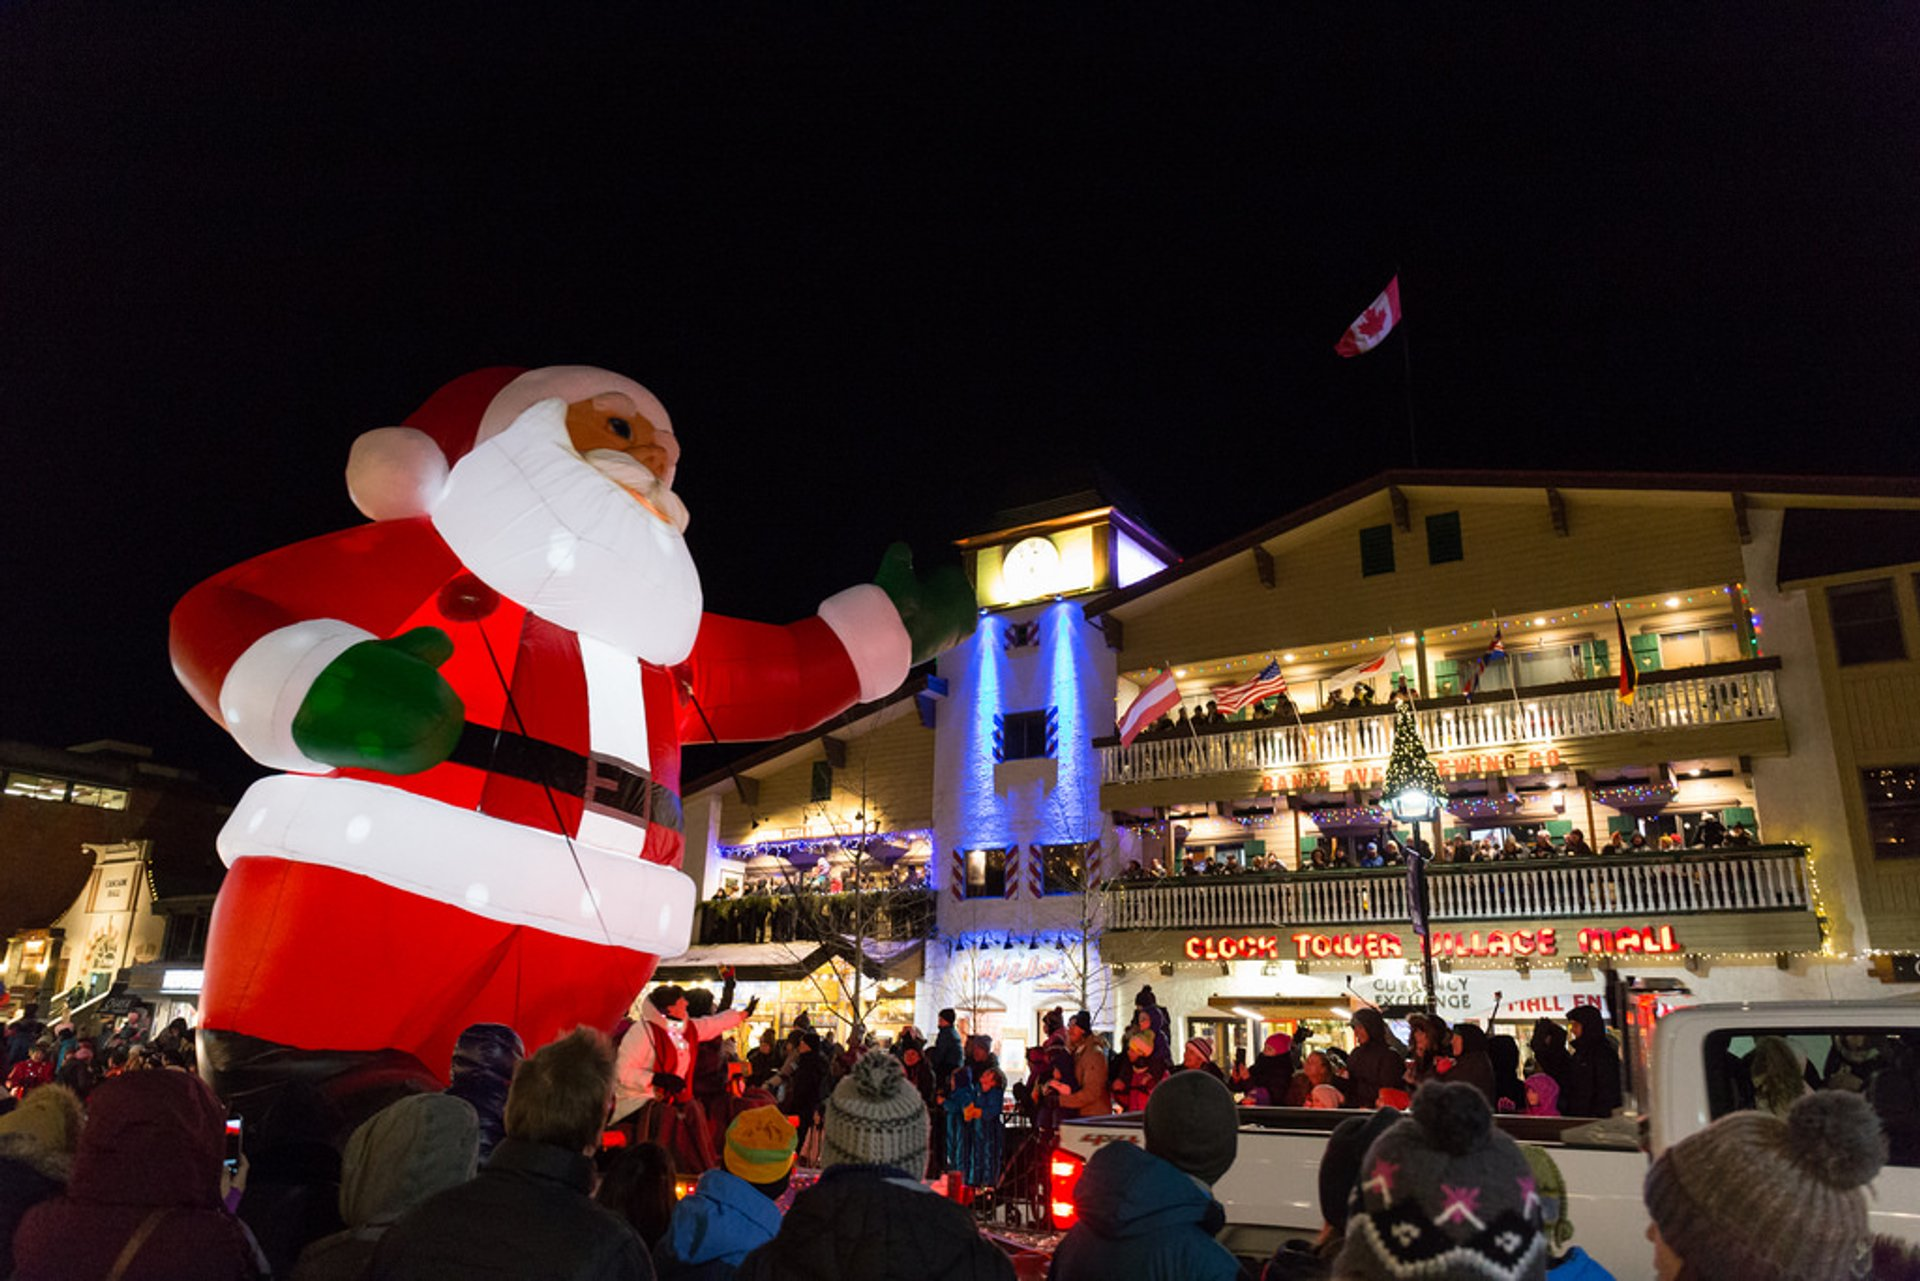 Christmas Parades Near Me 2019.Santa Claus Parade Of Lights 2019 In Banff Jasper National